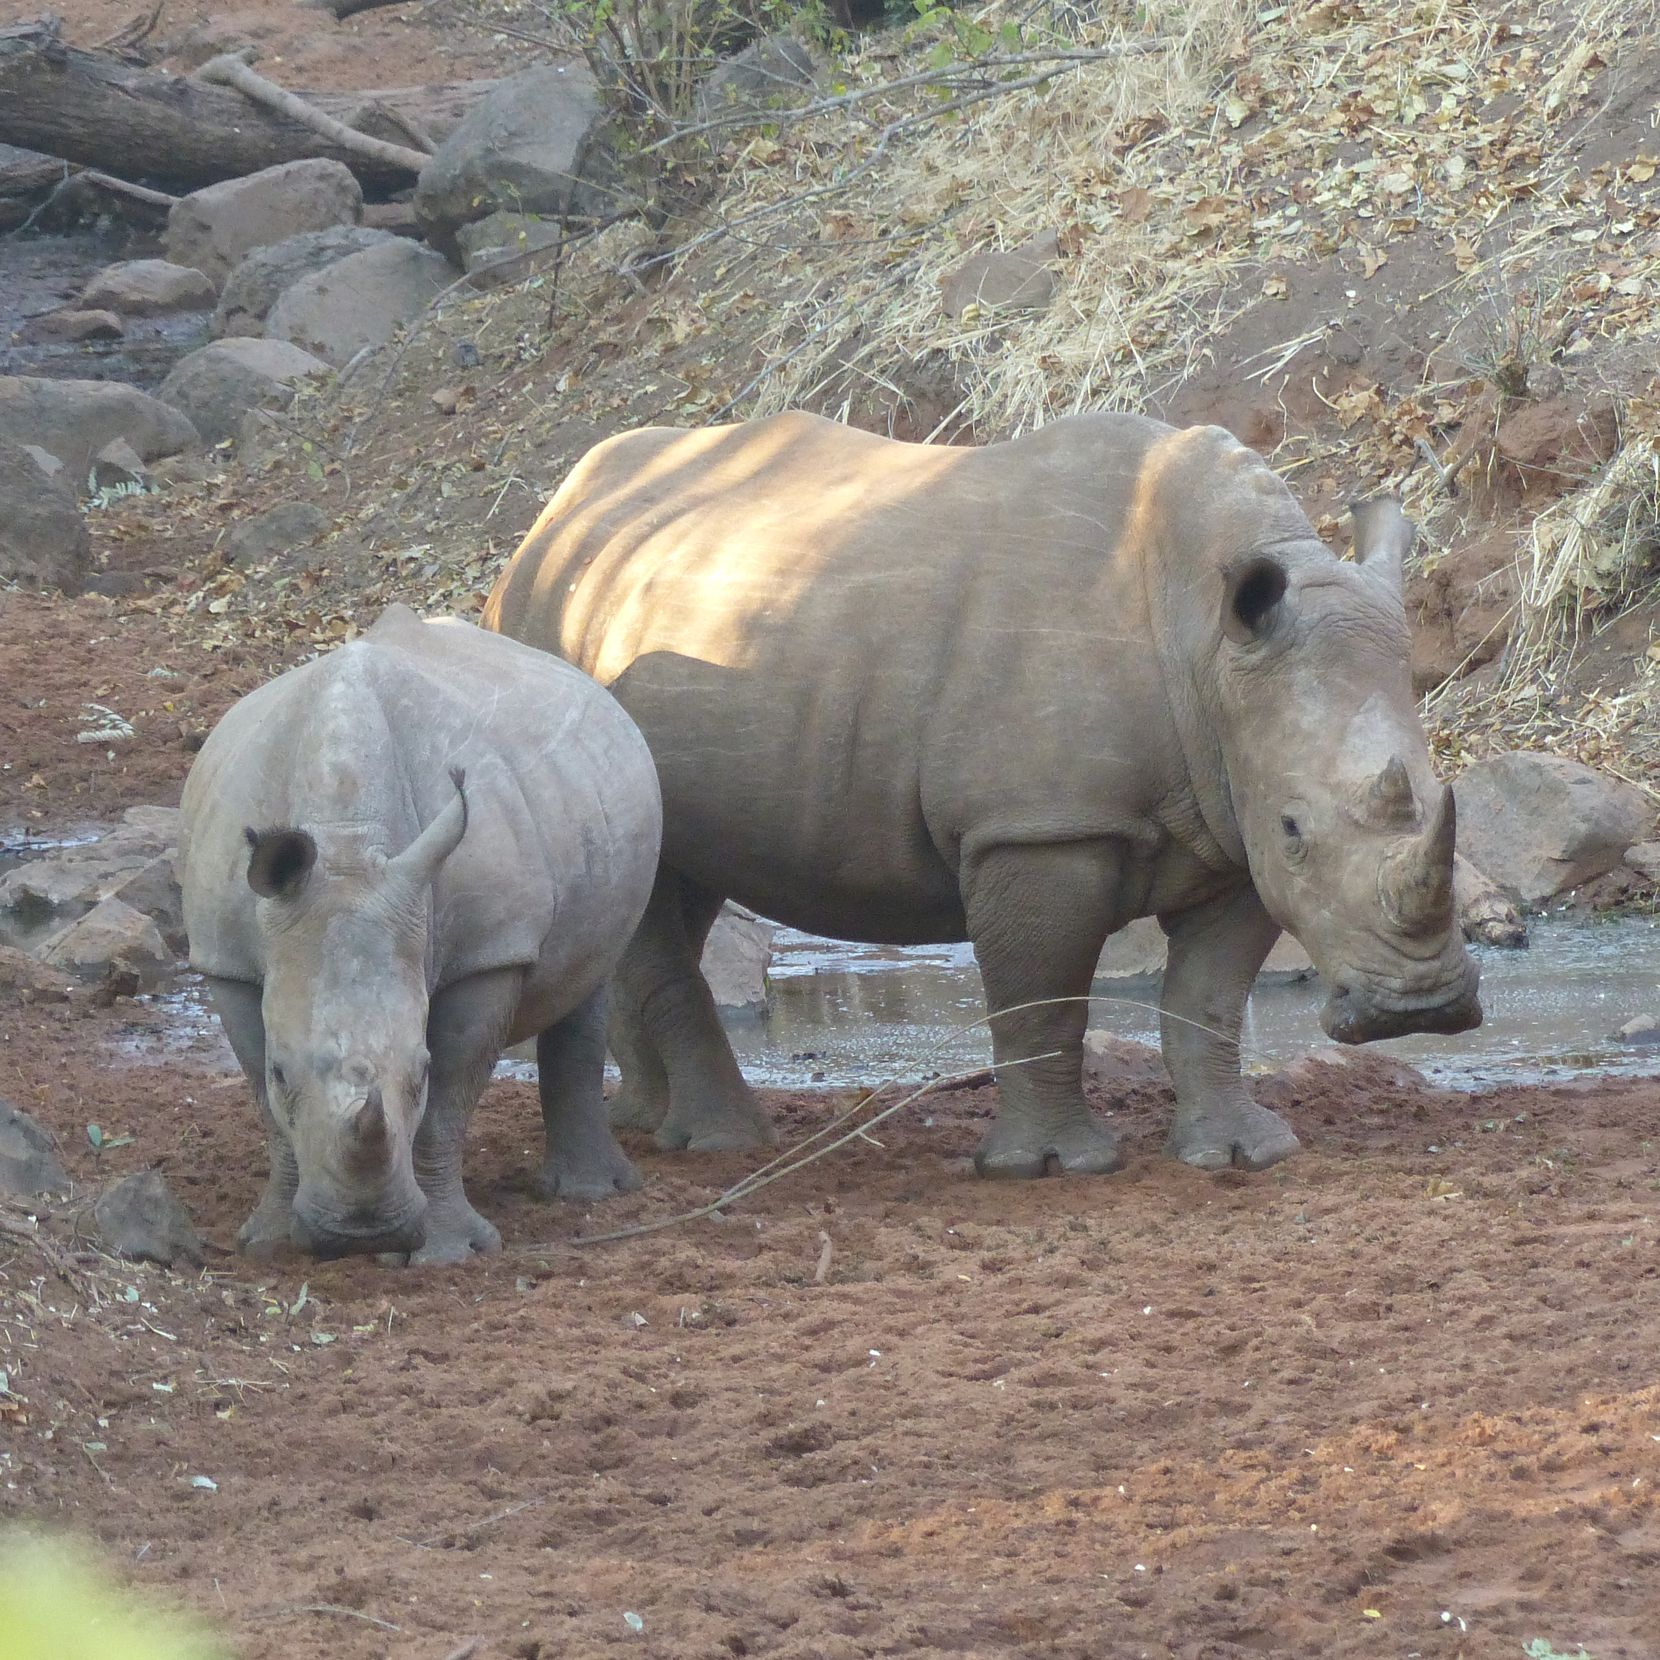 White rhinos at Mosi-oa-Tunya National Park in Zambia are guarded round the clock from poachers.